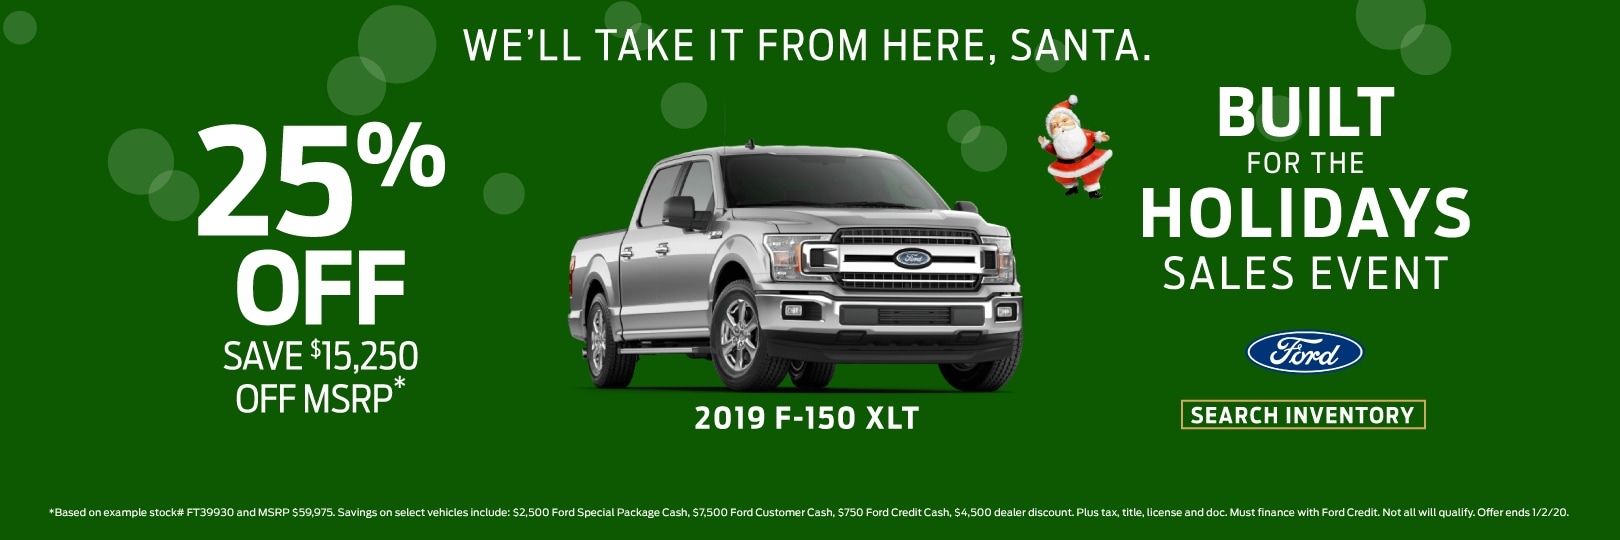 New Ford Used Car Dealer In Rockford Il Near Belvidere